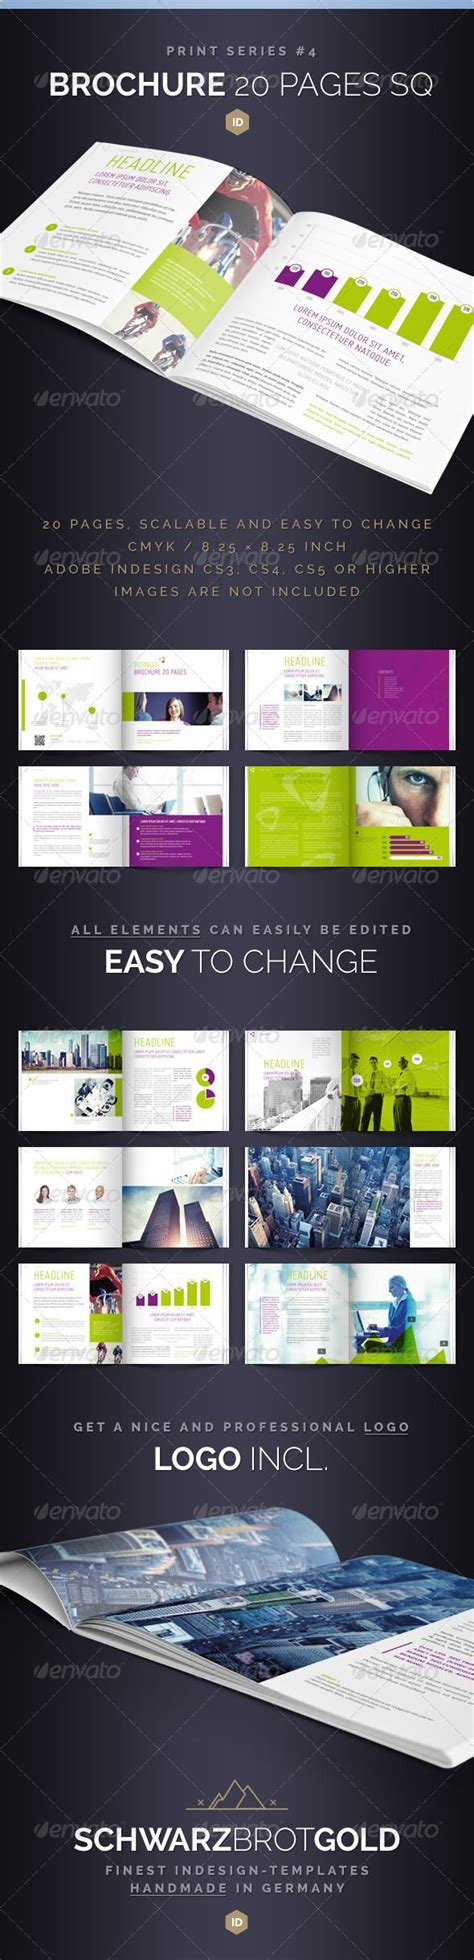 brochure templates for photoshop cs5 96 best images about print templates on pinterest adobe